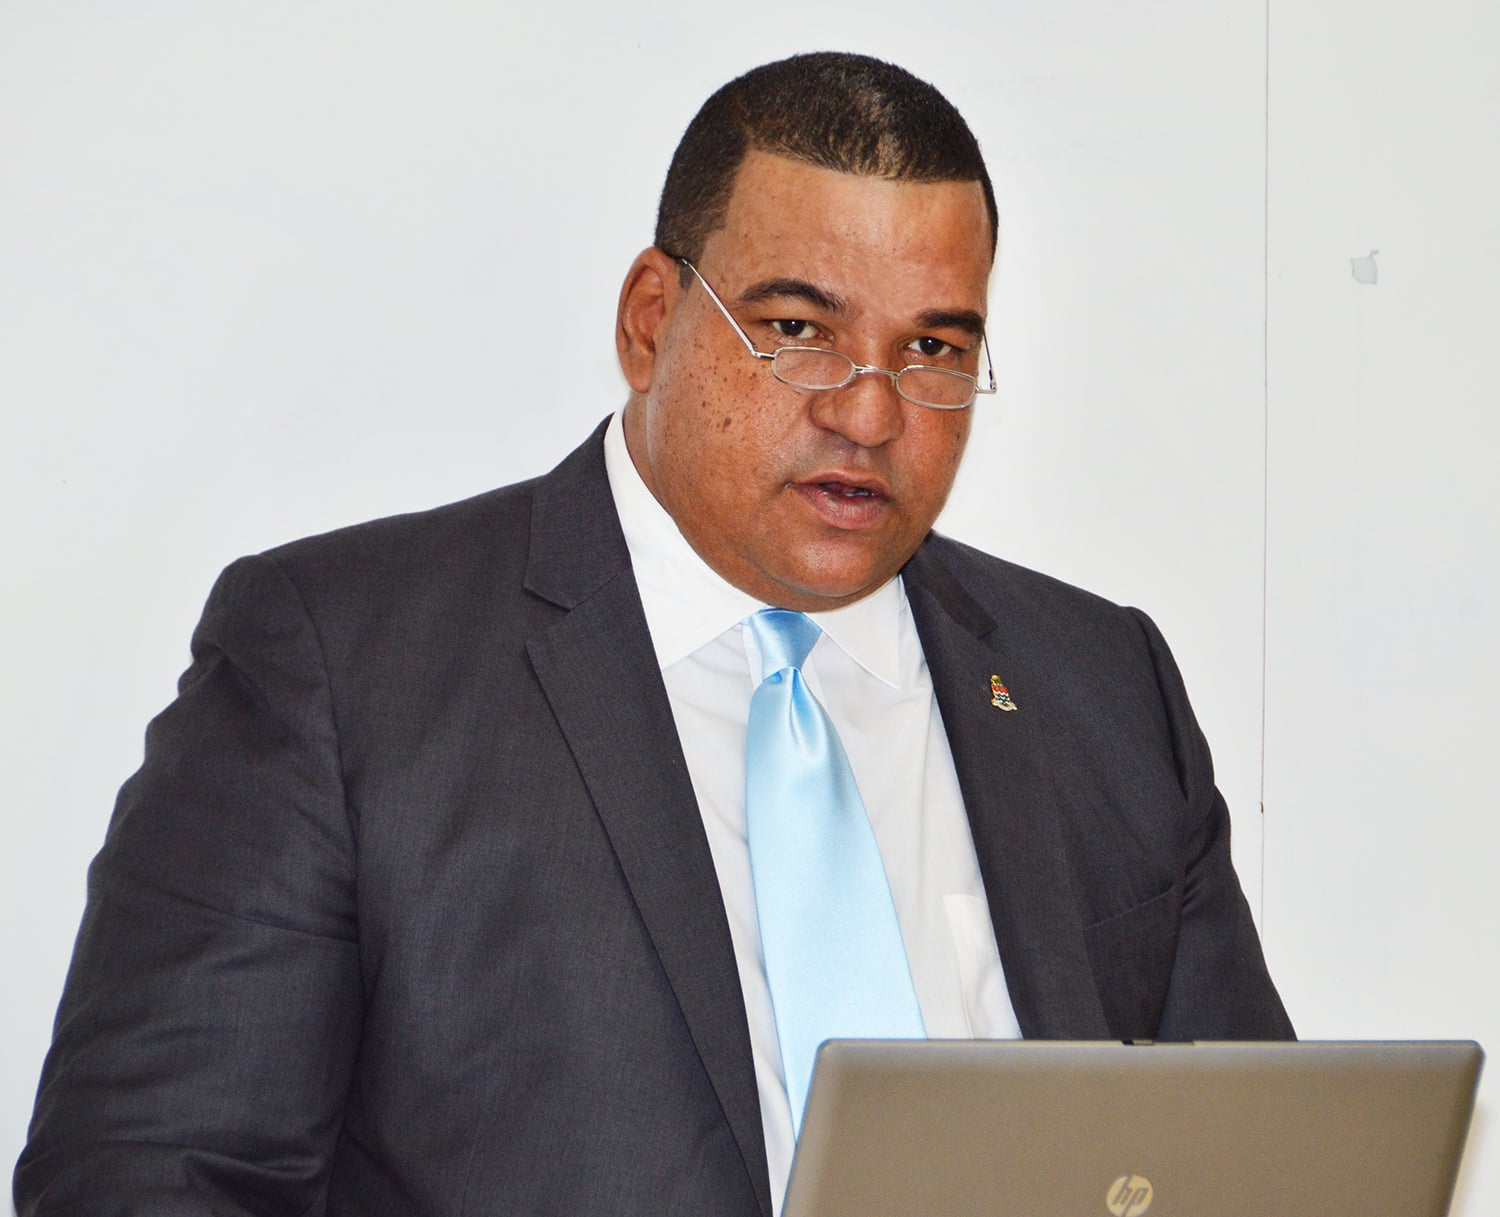 Councillor Mr. Austin Harris addresses a stakeholders meeting at the Chamber of Commerce on the Occupational Wage Survey (OWS) that is to start on 16 October 2017.